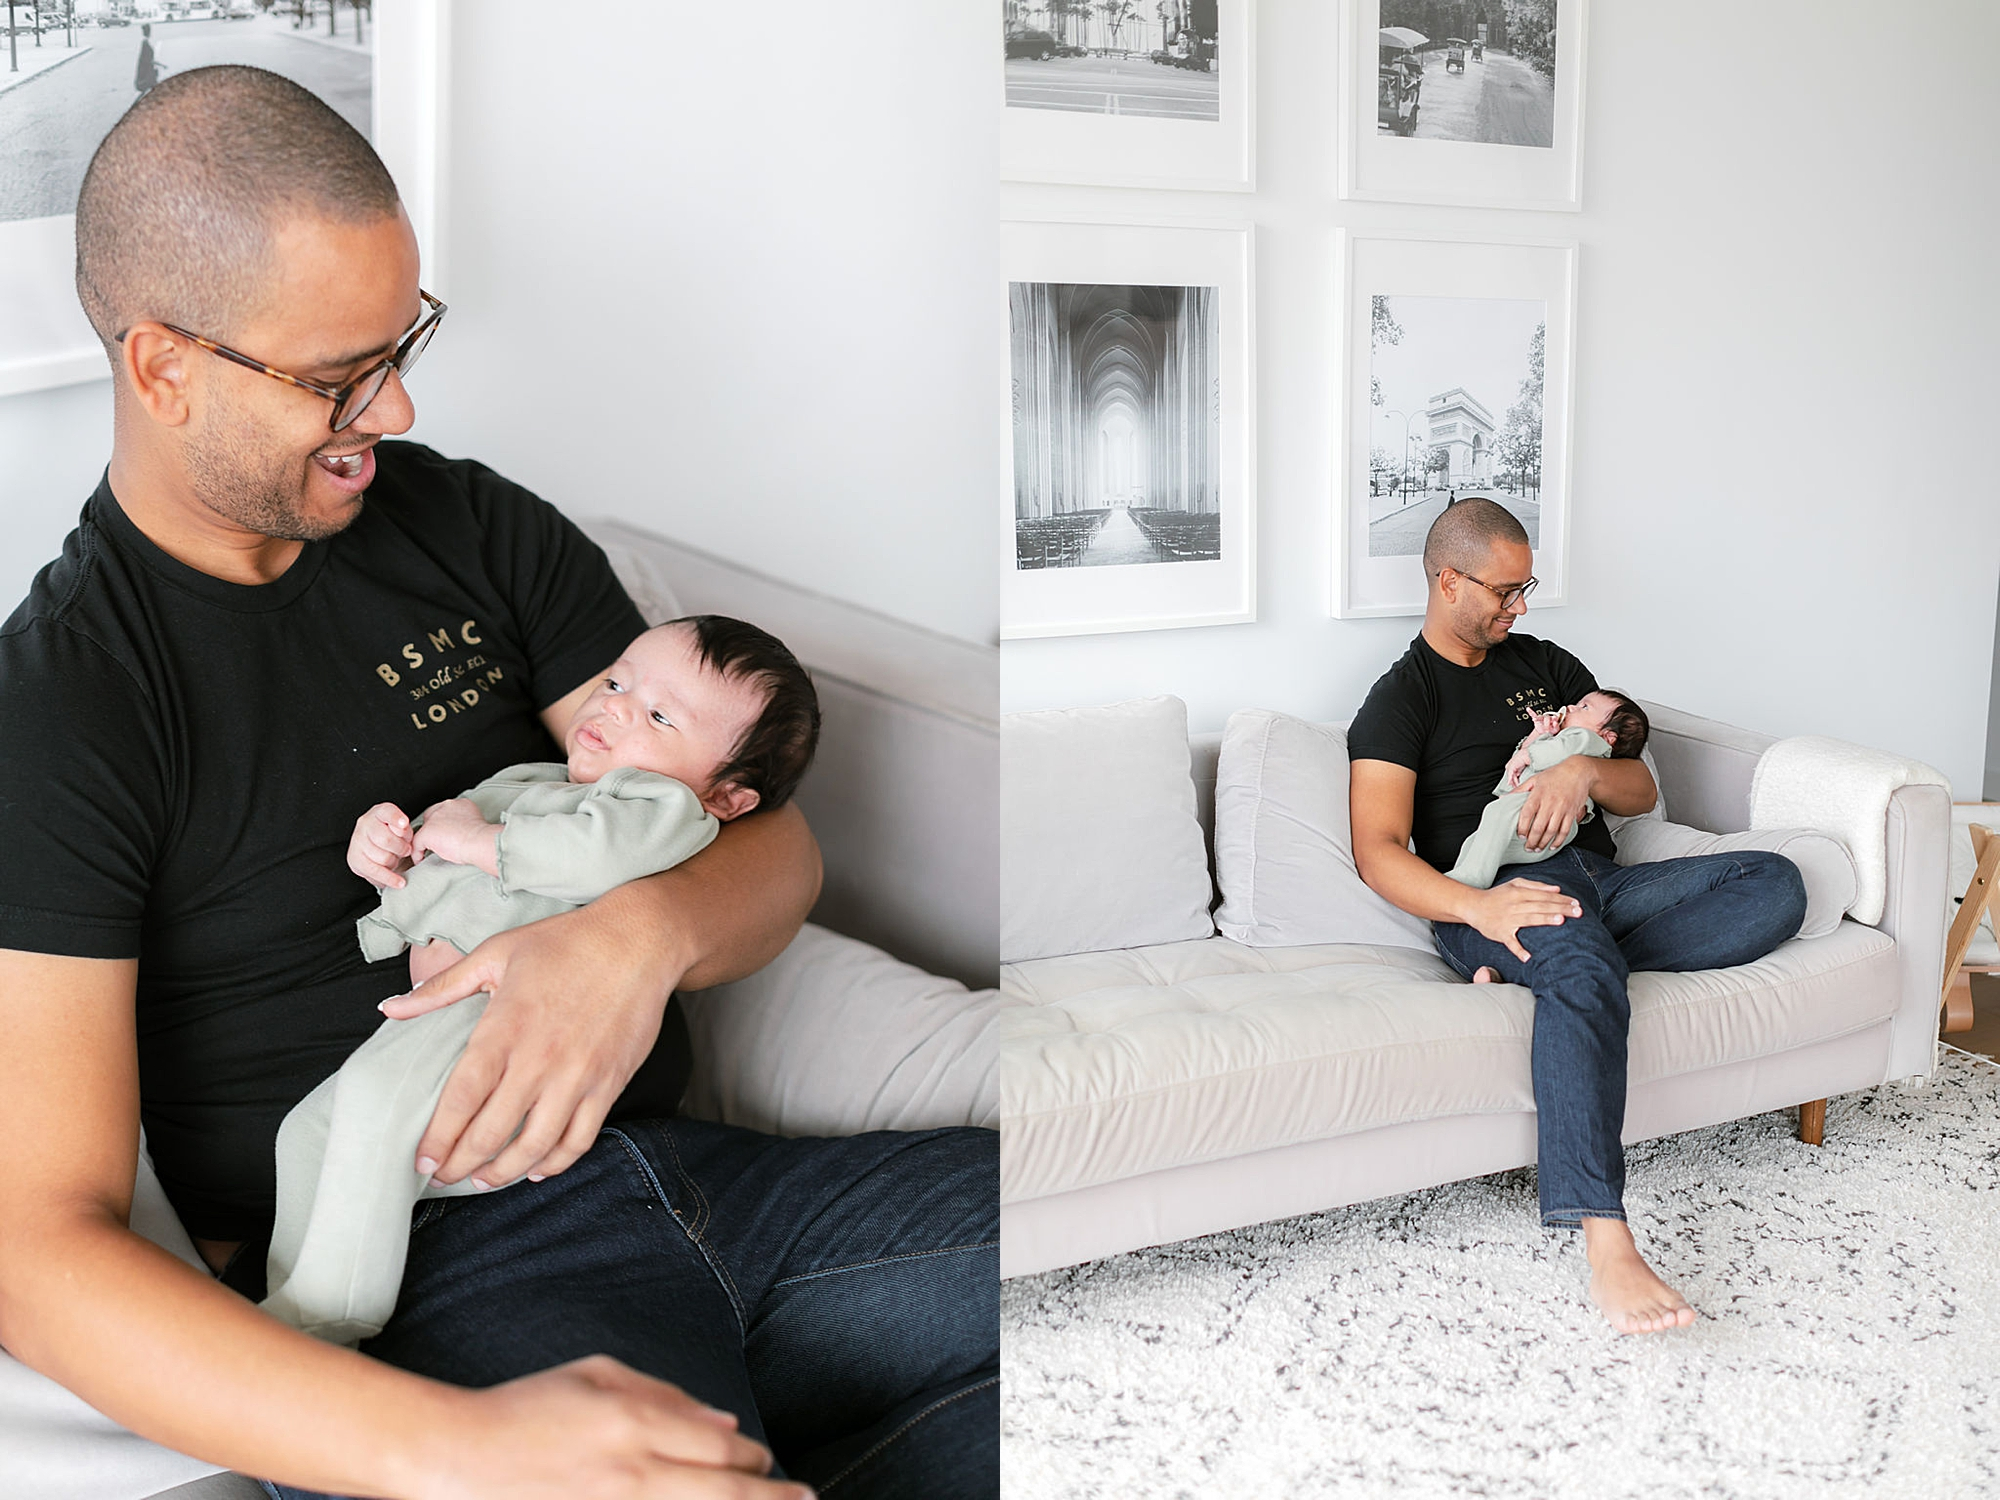 Lifestyle Home Newborn Session Family Portraits NYC by Magdalena Studios13